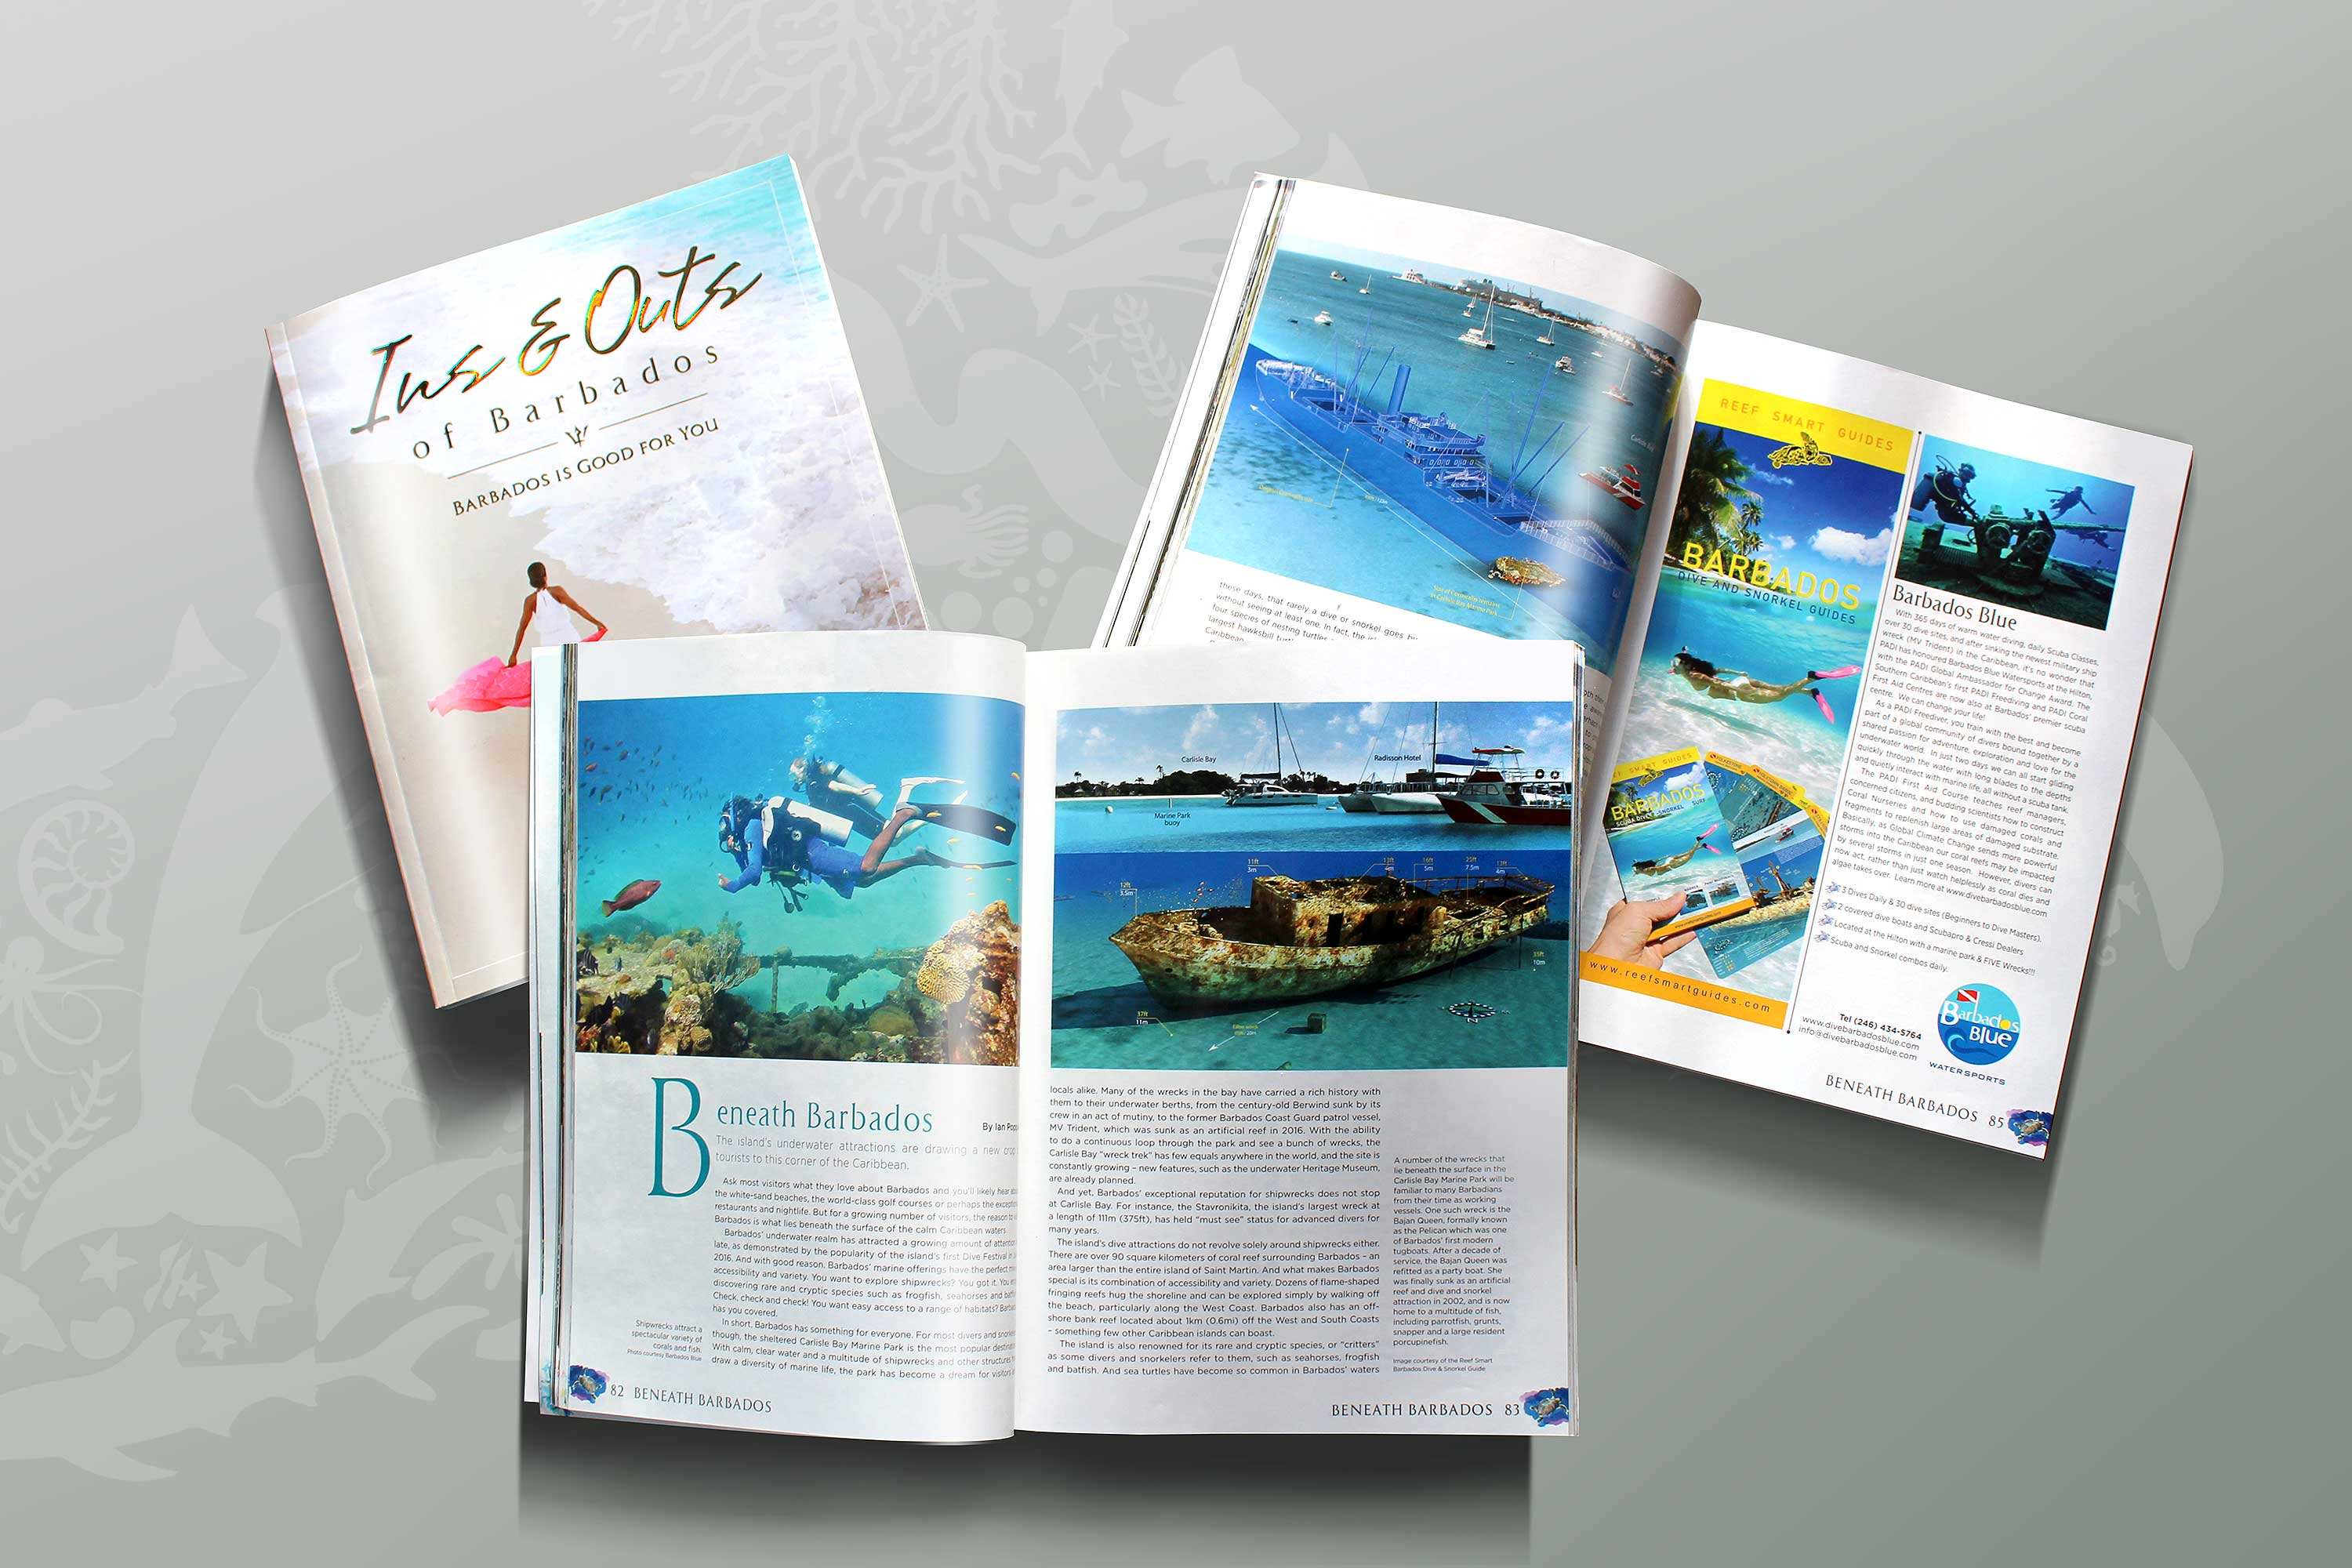 Ins and Outs of Barbados features Reef Smart Guides